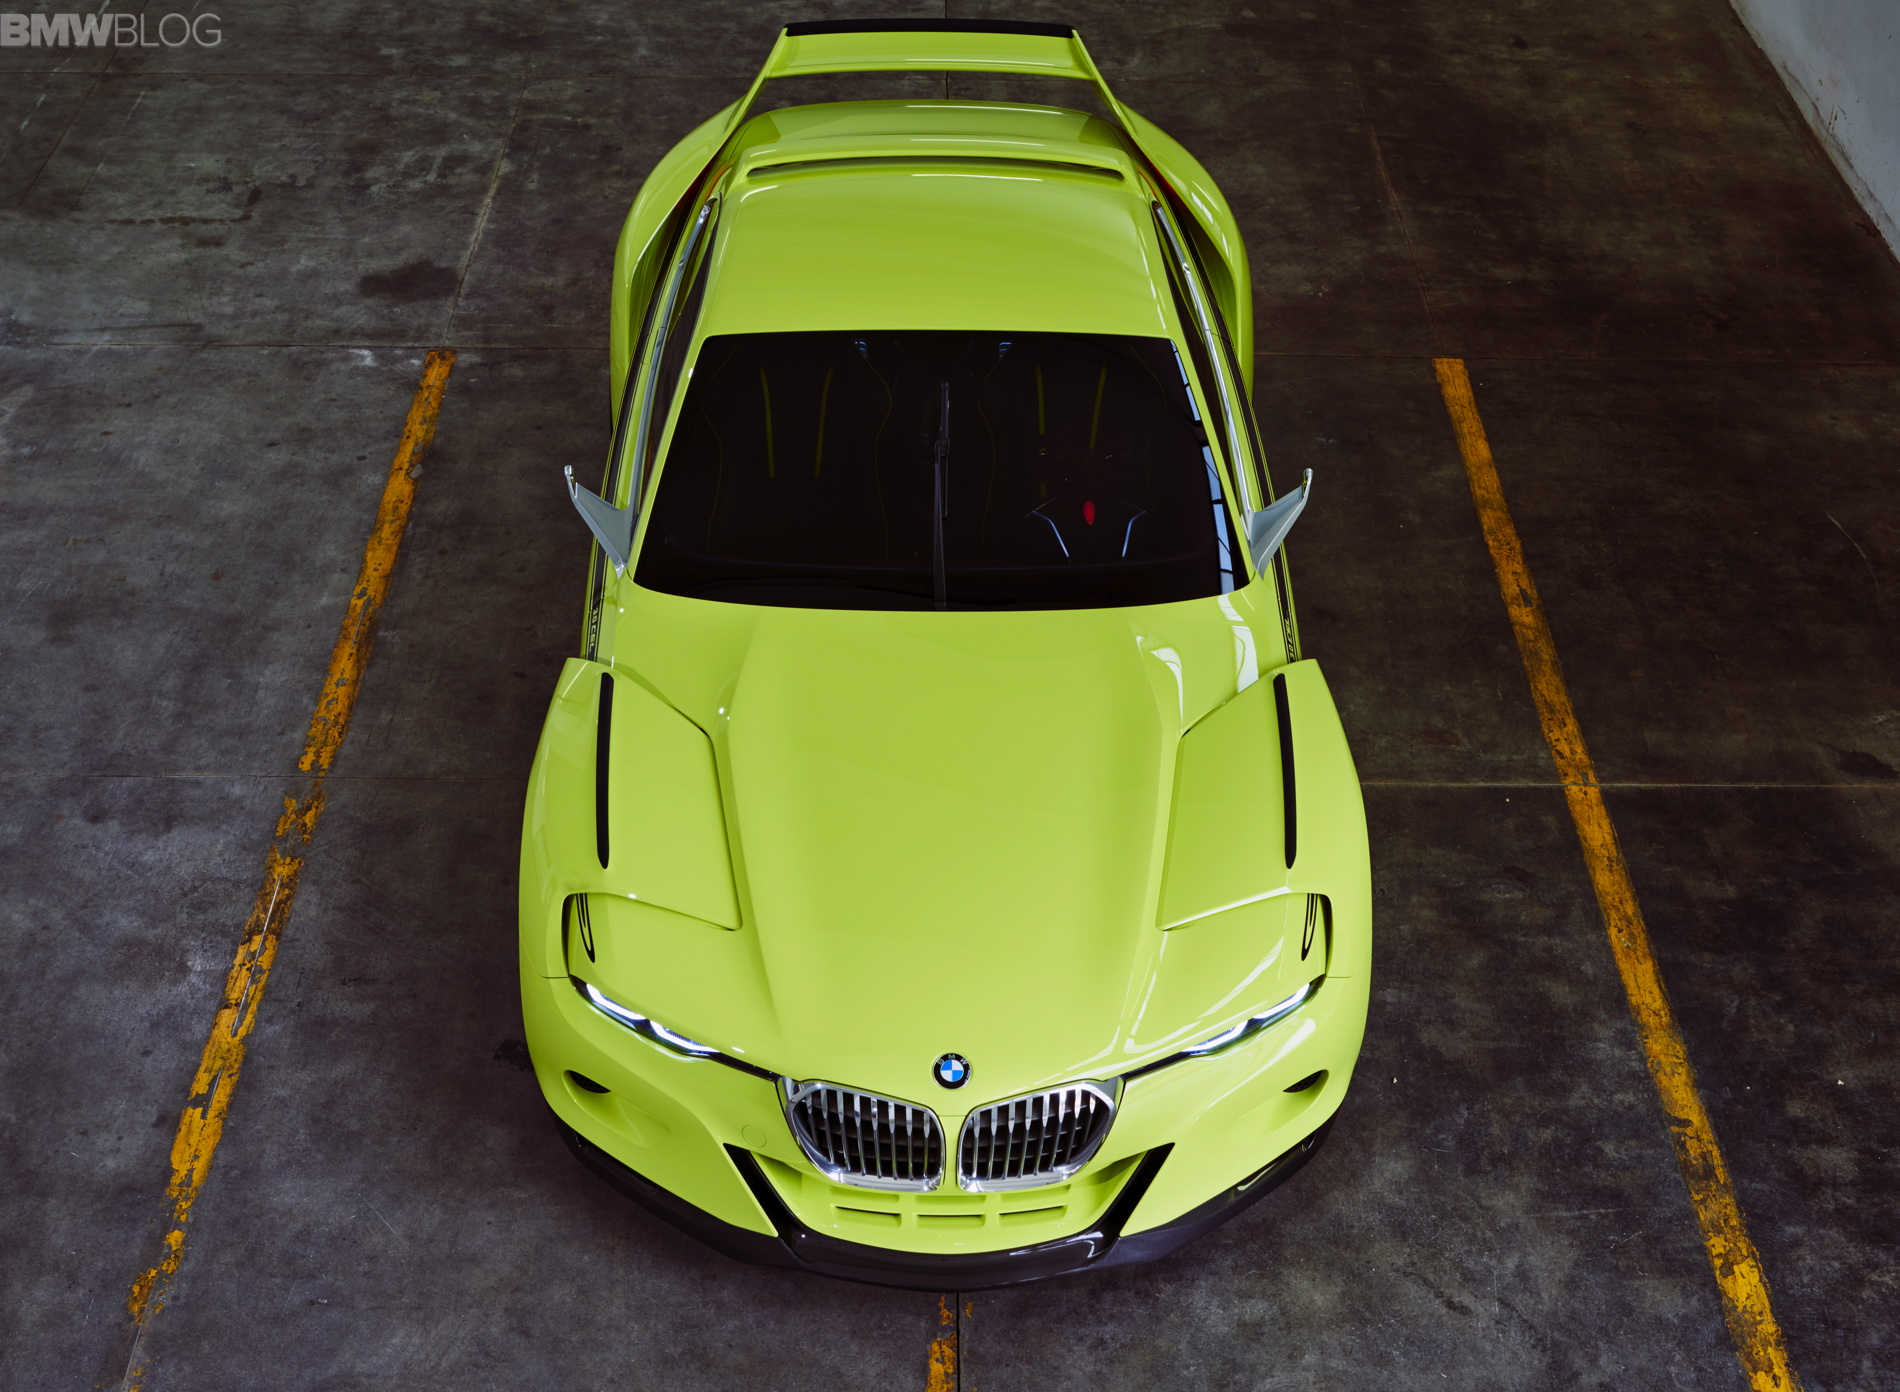 CAR Magazine drives the BMW 3.0 CSL Hommage